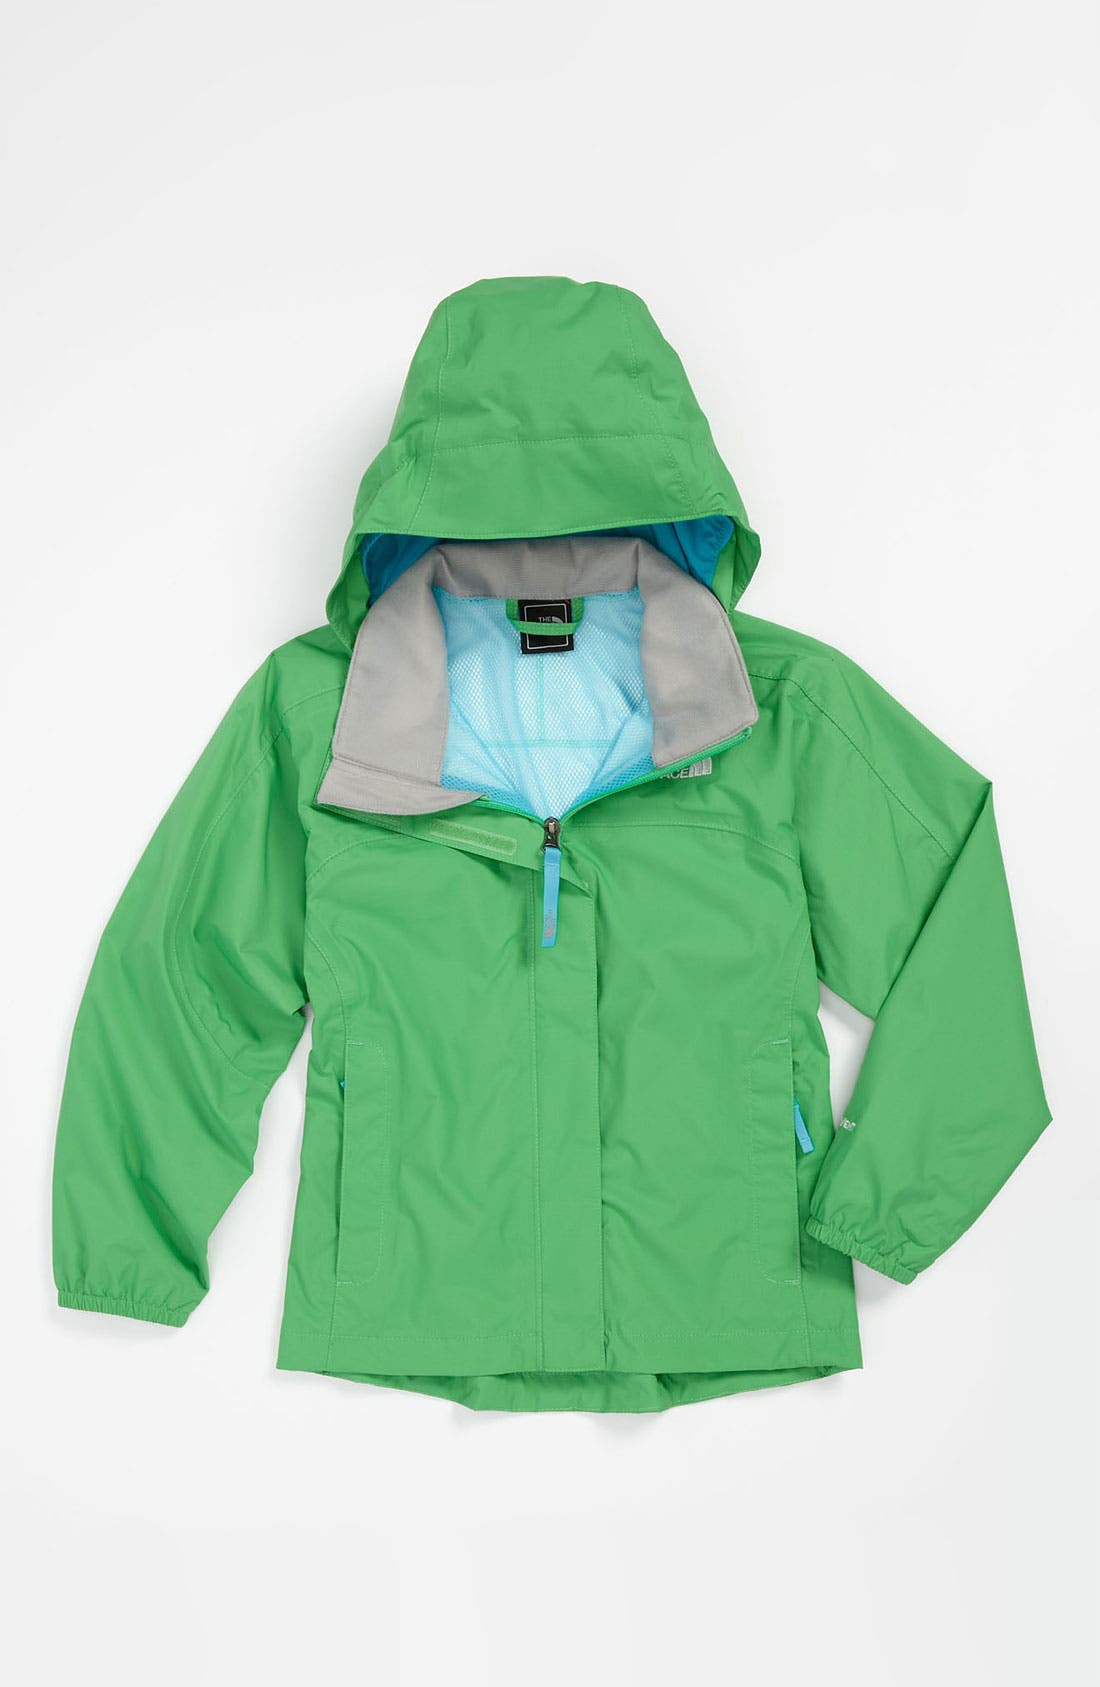 Alternate Image 1 Selected - The North Face 'Resolve' Rain Jacket (Little Girls & Big Girls)